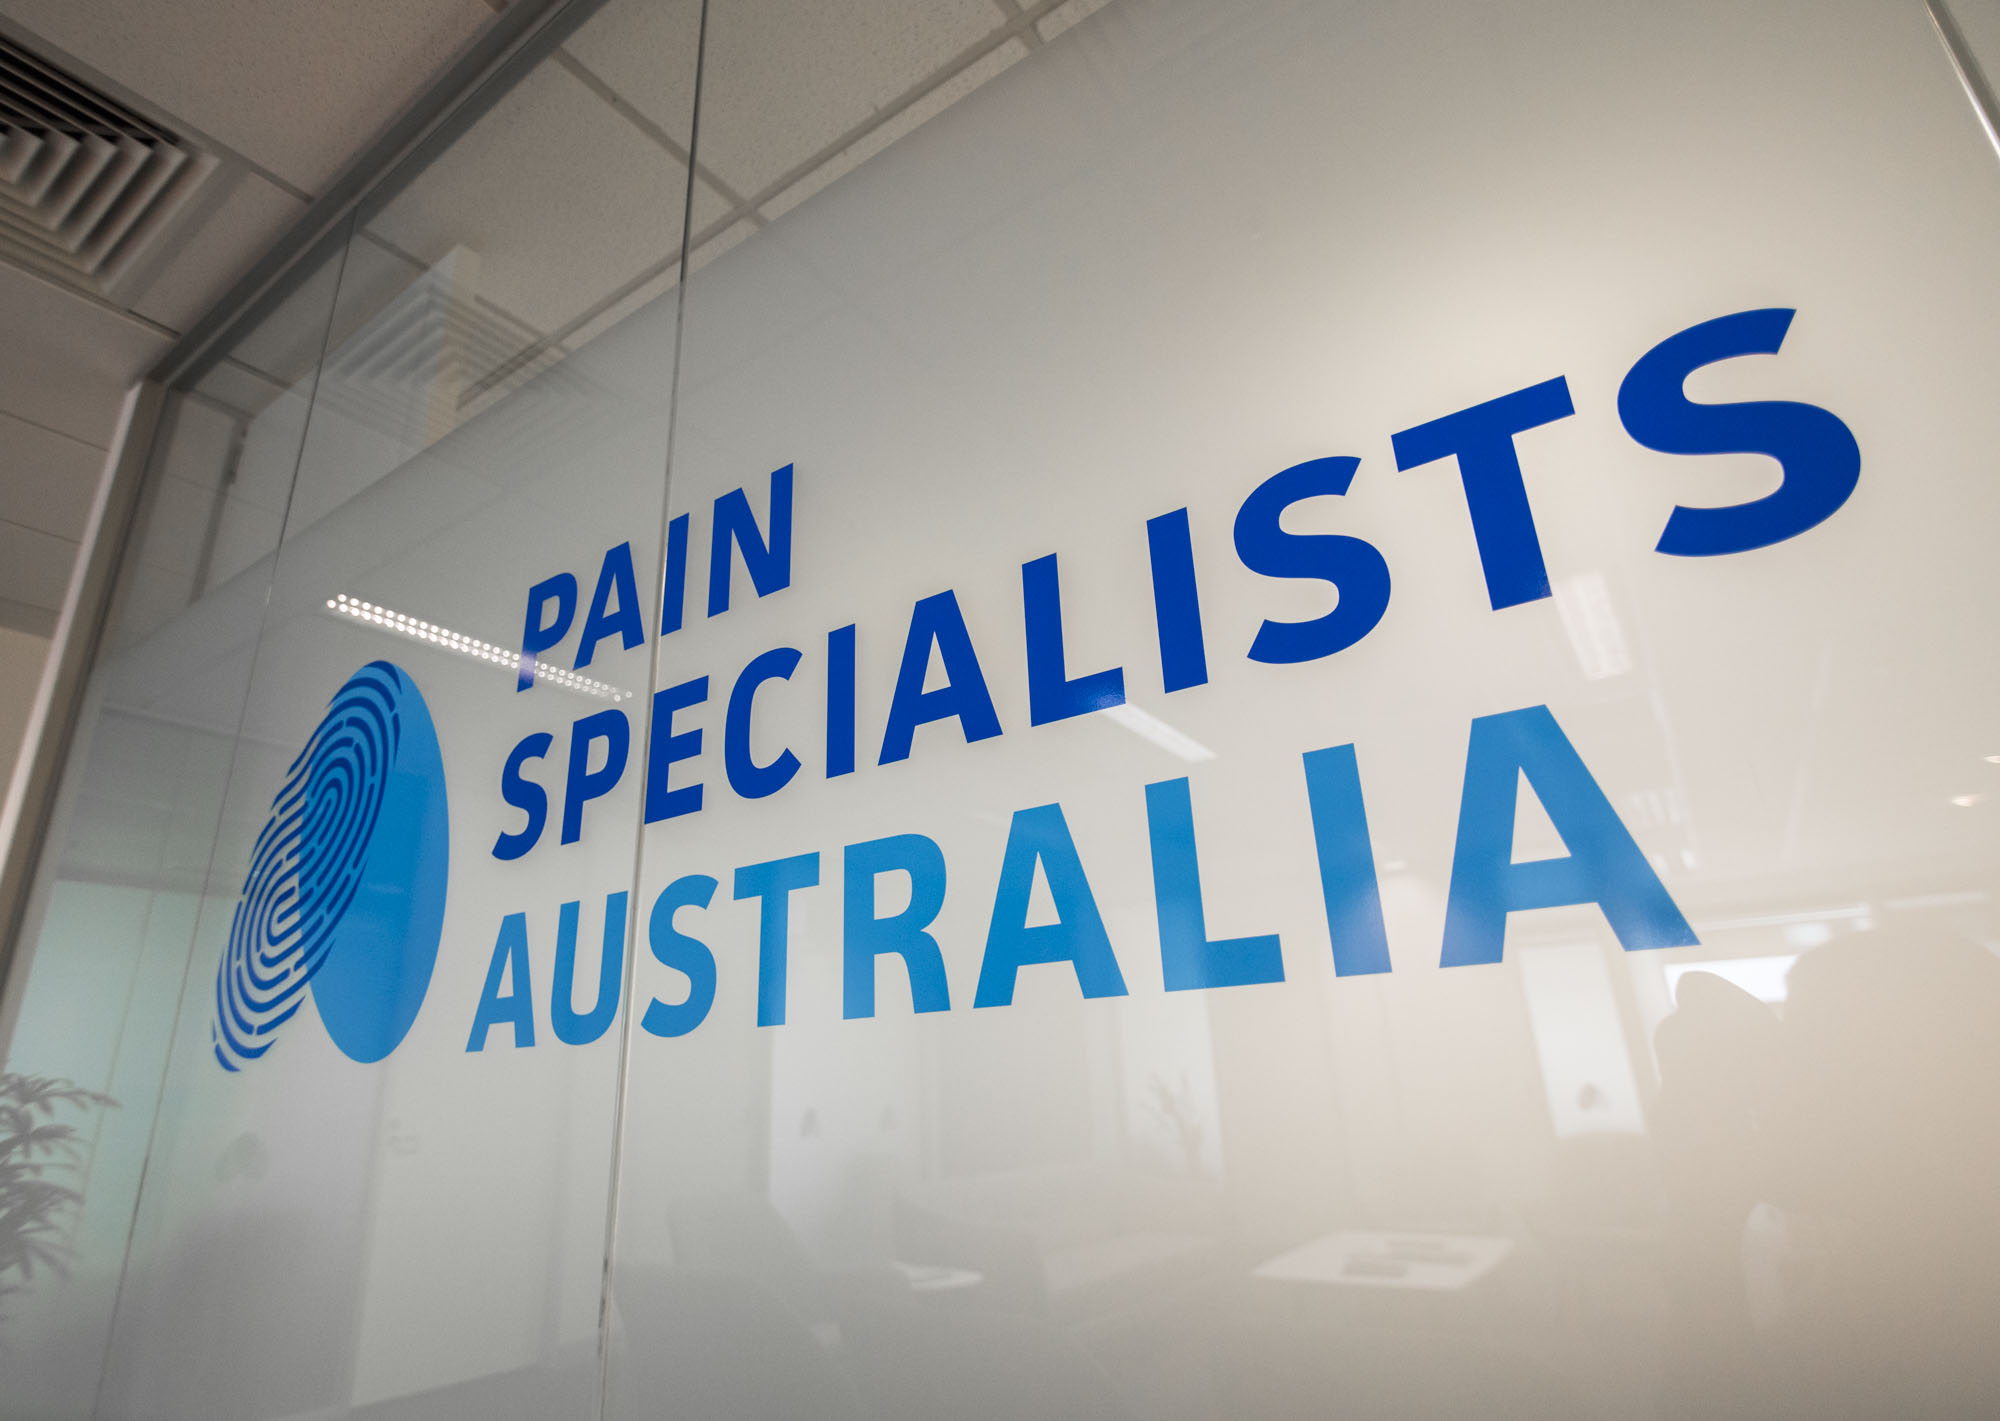 Pain Specialists Australia - Consulting Rooms Logo.jpg